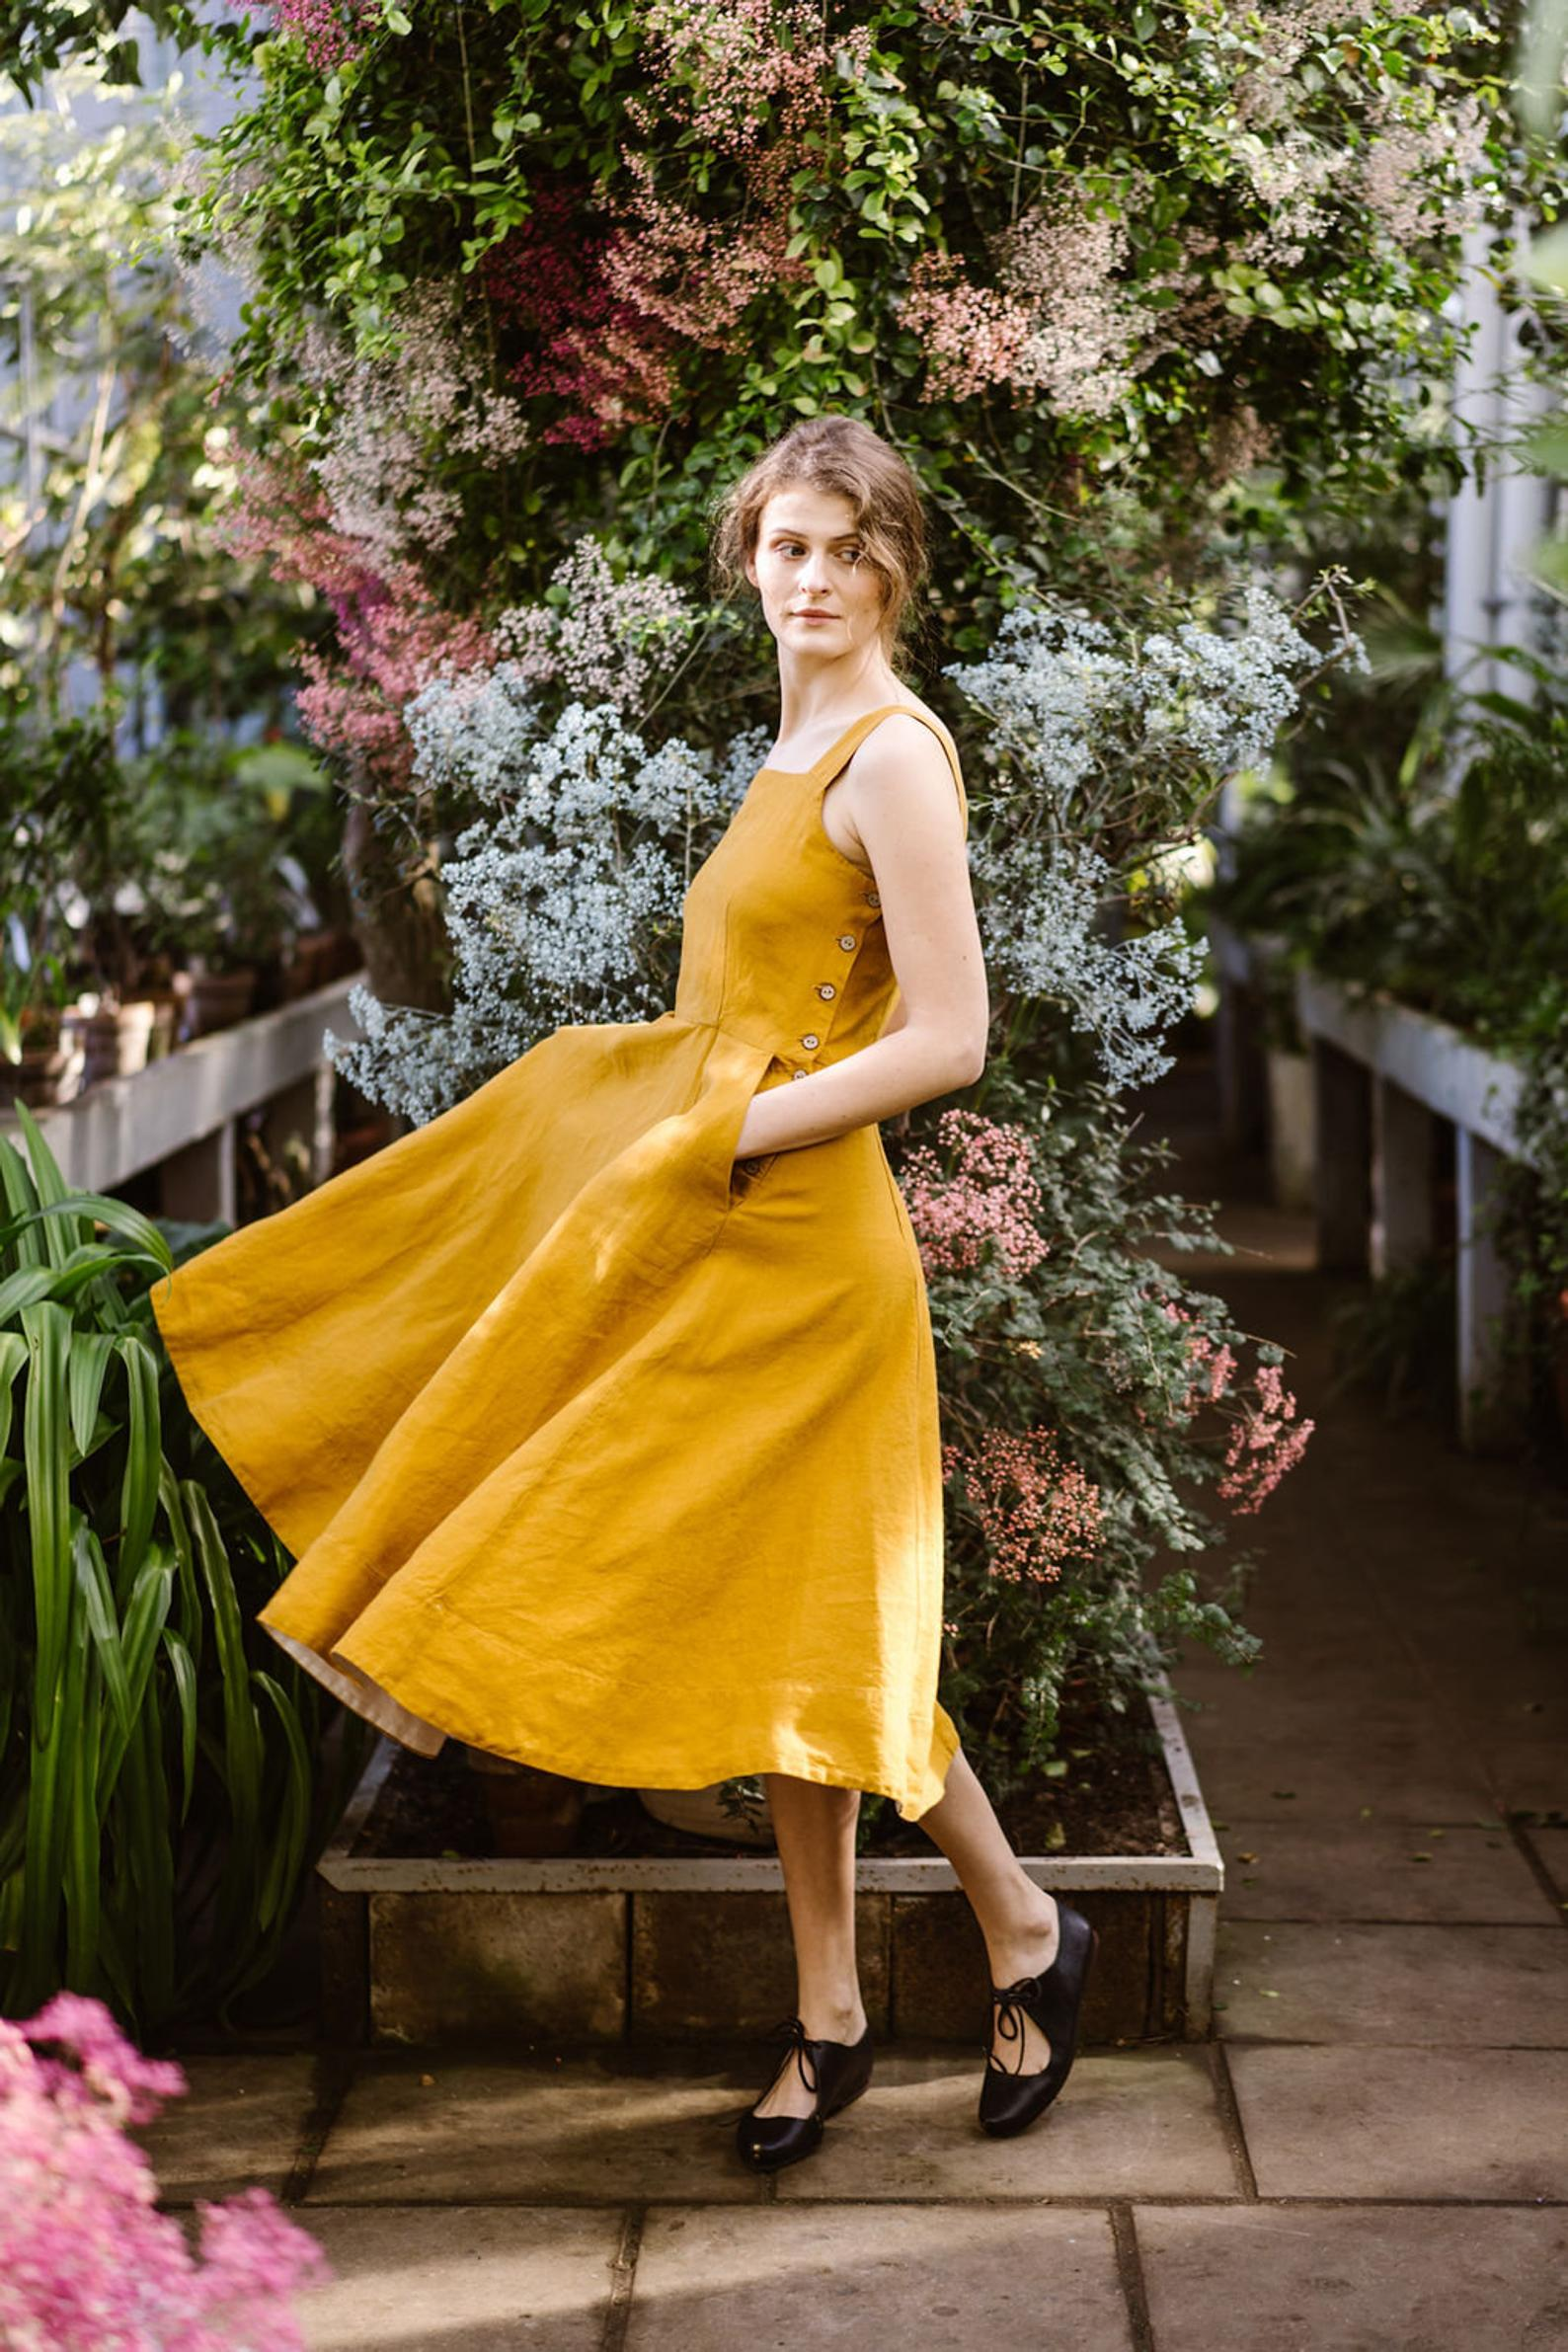 Sondeflor - Mustard Pinafore DressMy mustard color dreams. I love the coverage of this dress and the movement in the skirt, which adds an element of formality to the dress without making it extravagant. An easy dress to style up for a special event, or down for a regular summer day.